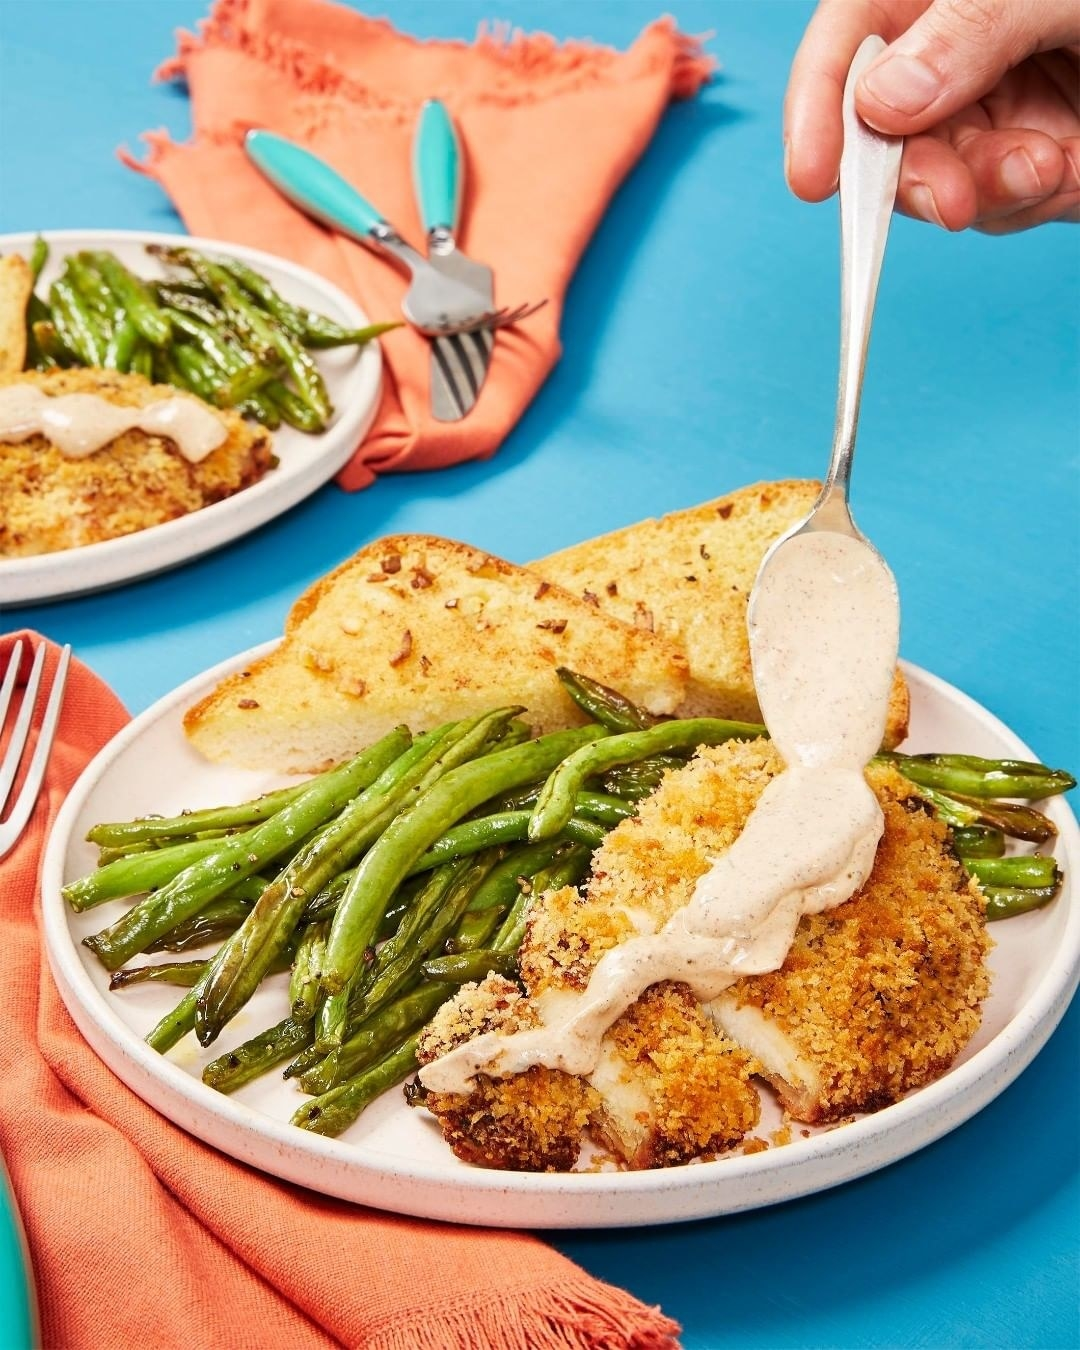 A plate of breaded chicken, green beans, and toast